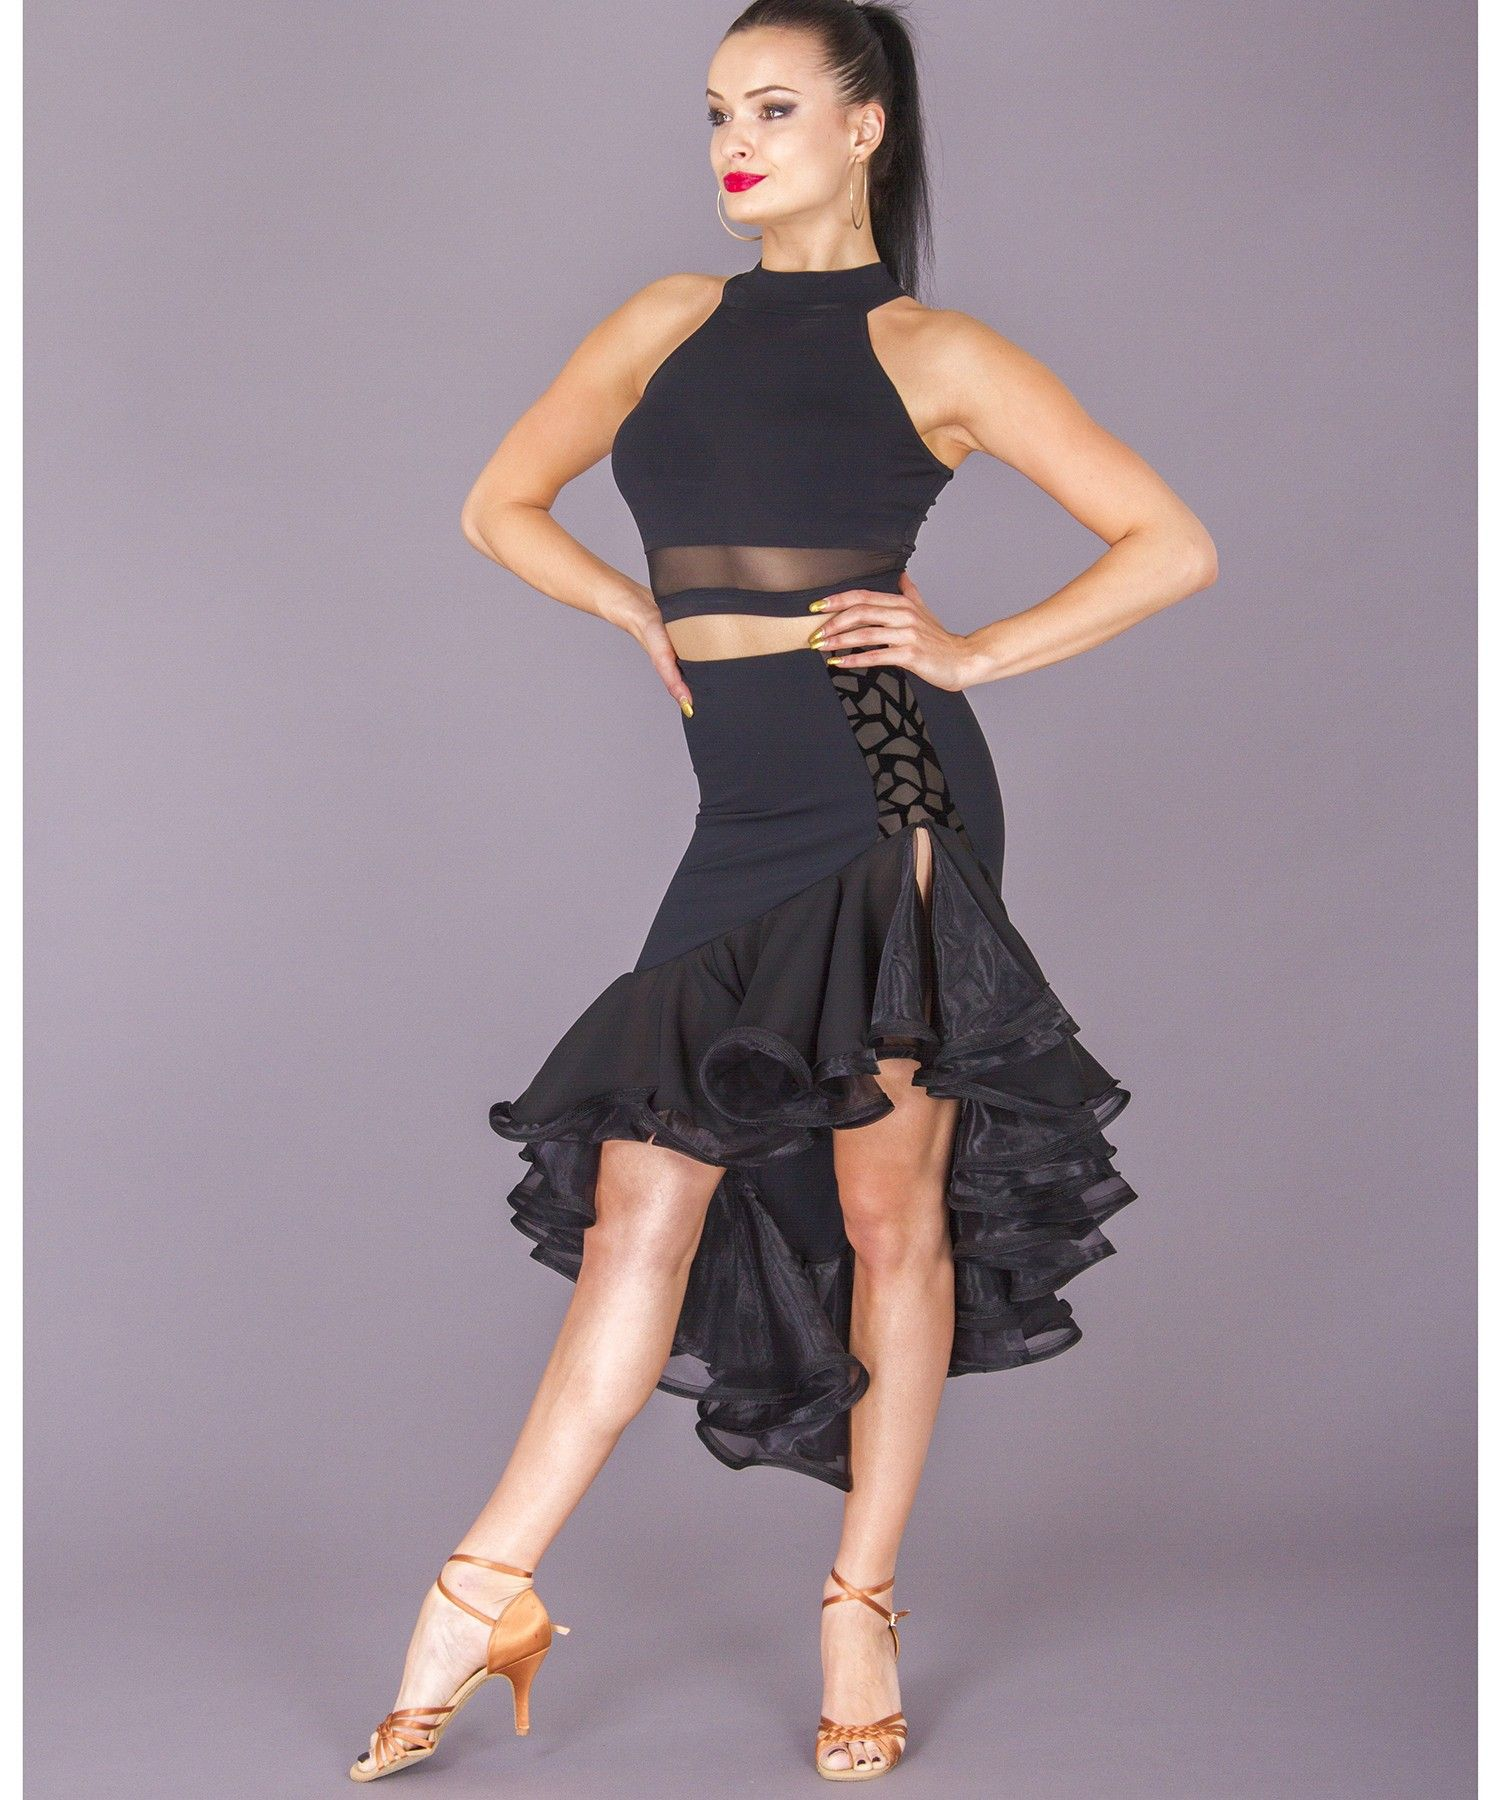 573f101409b6 Women's Skirts, DSI London, 3261 Julianna Skirt, $149.00, from VEdance, the  very best in ballroom and Latin dance shoes and dancewear.